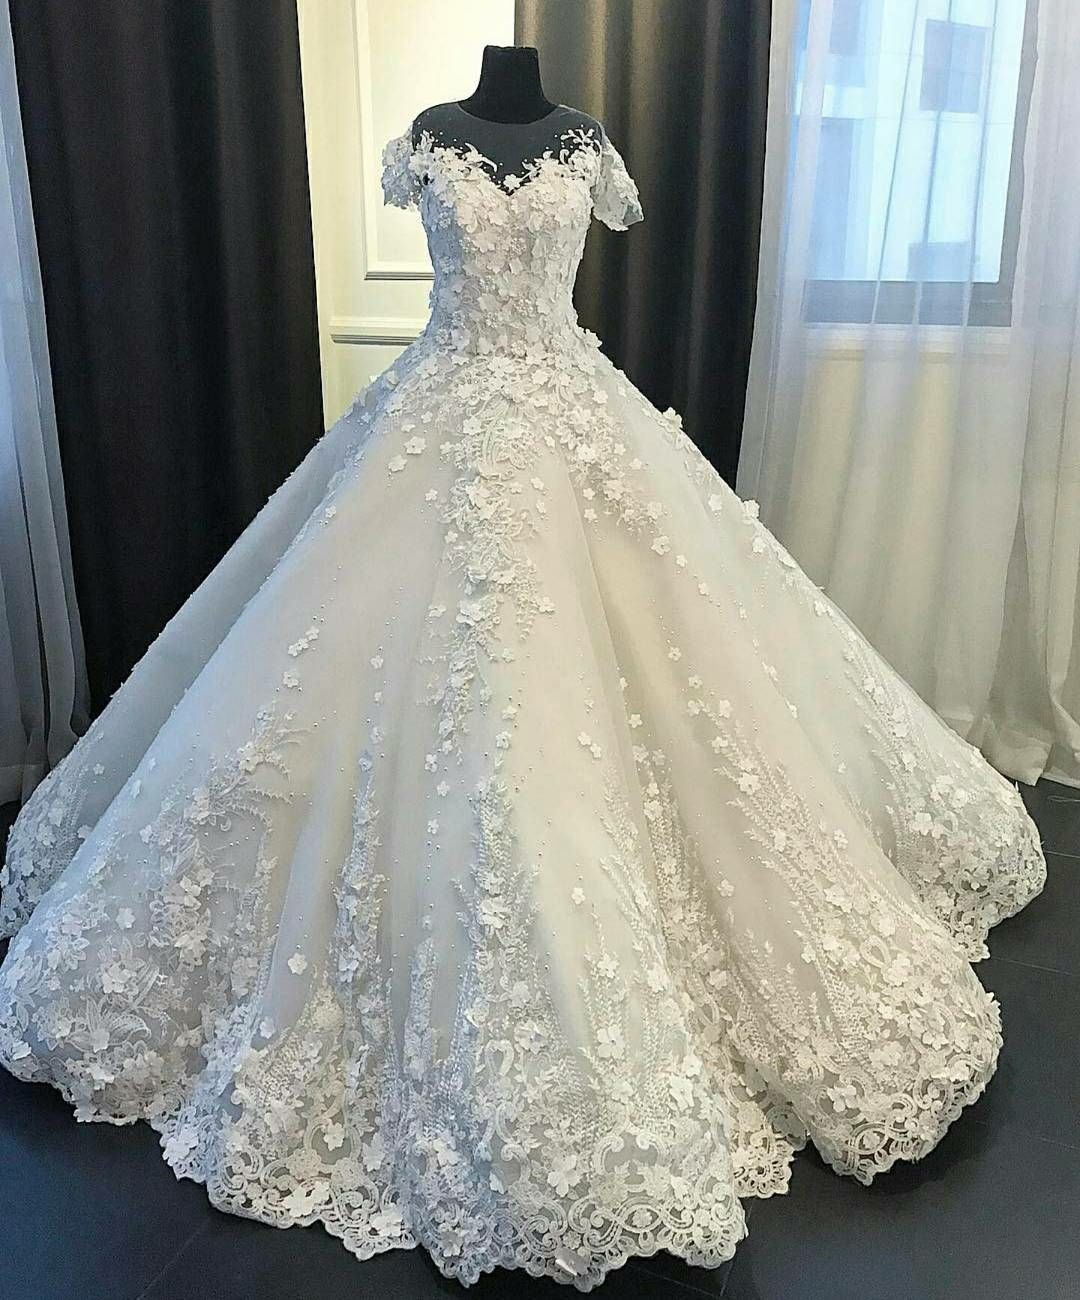 Custom Wedding Dresses And Bridal Gowns From The Usa Dream Wedding Dresses Bridal Dresses Custom Wedding Dress,Wedding White Satin Slip Dress